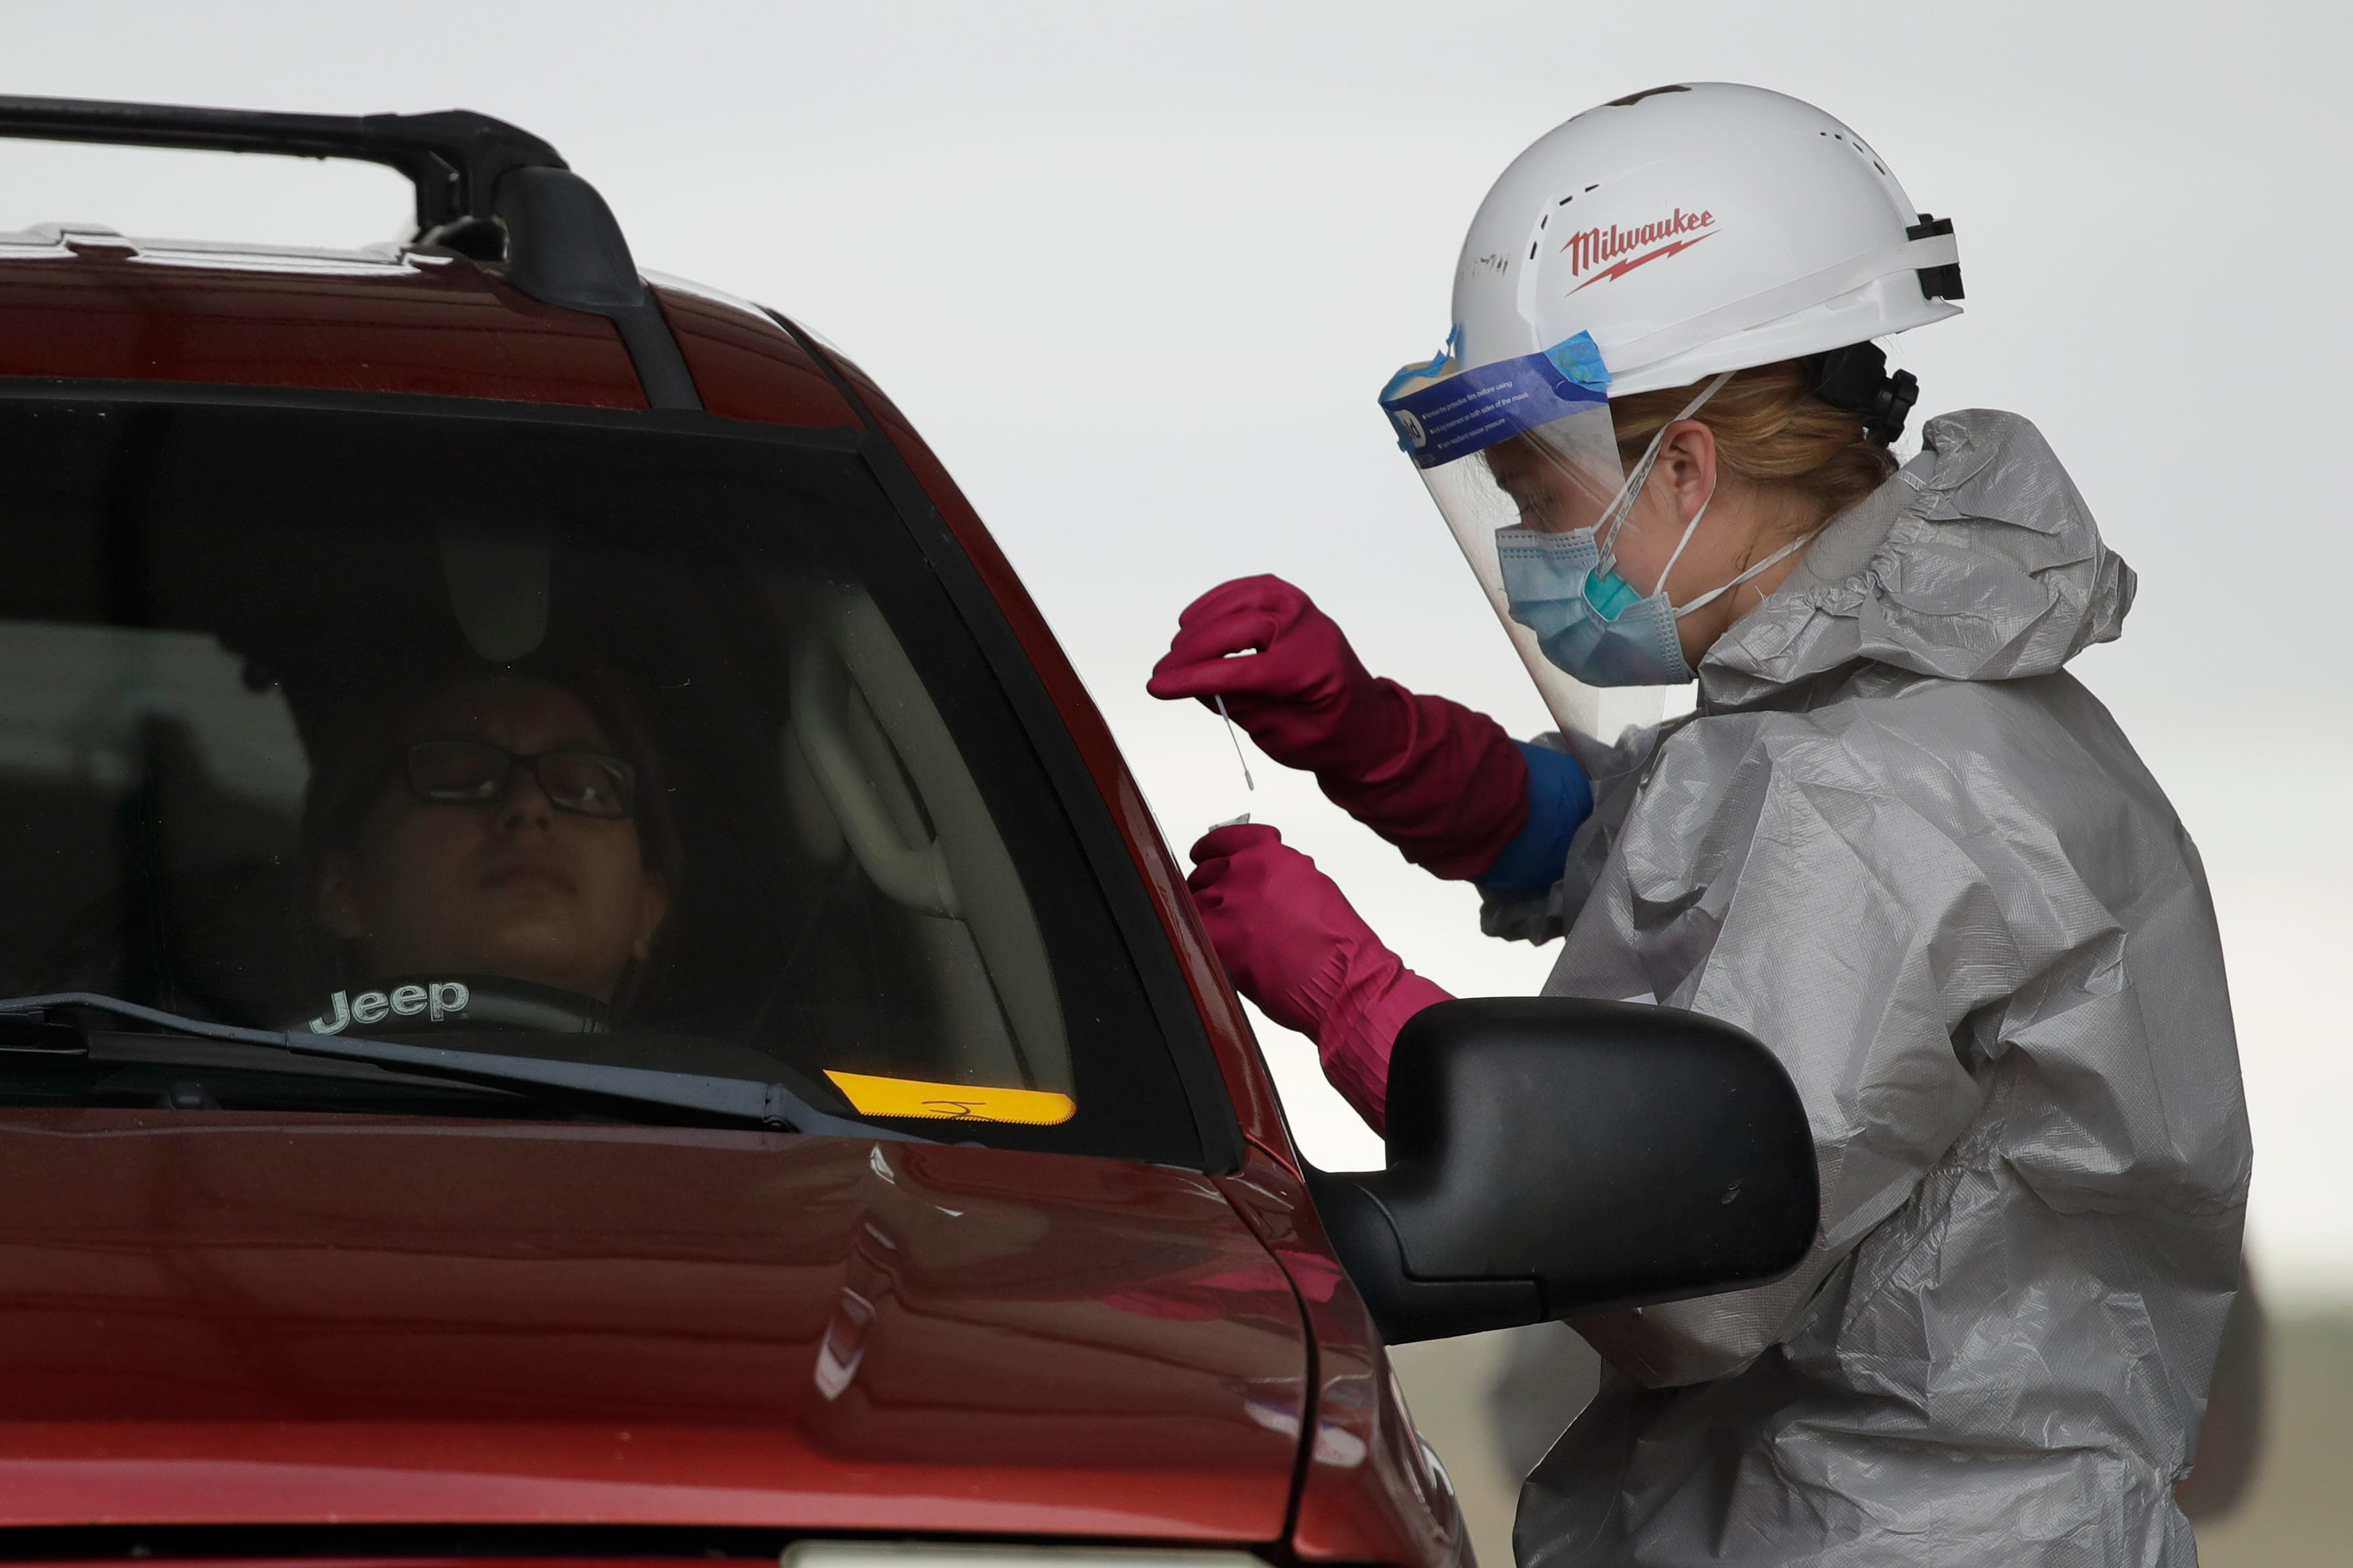 Kansas National Guard member Jessica Pal collects a sample at a drive-thru COVID-19 testing site May 20 in Dodge City, Kan. Army and Air Force medical guard units have tested 100-200 people daily.